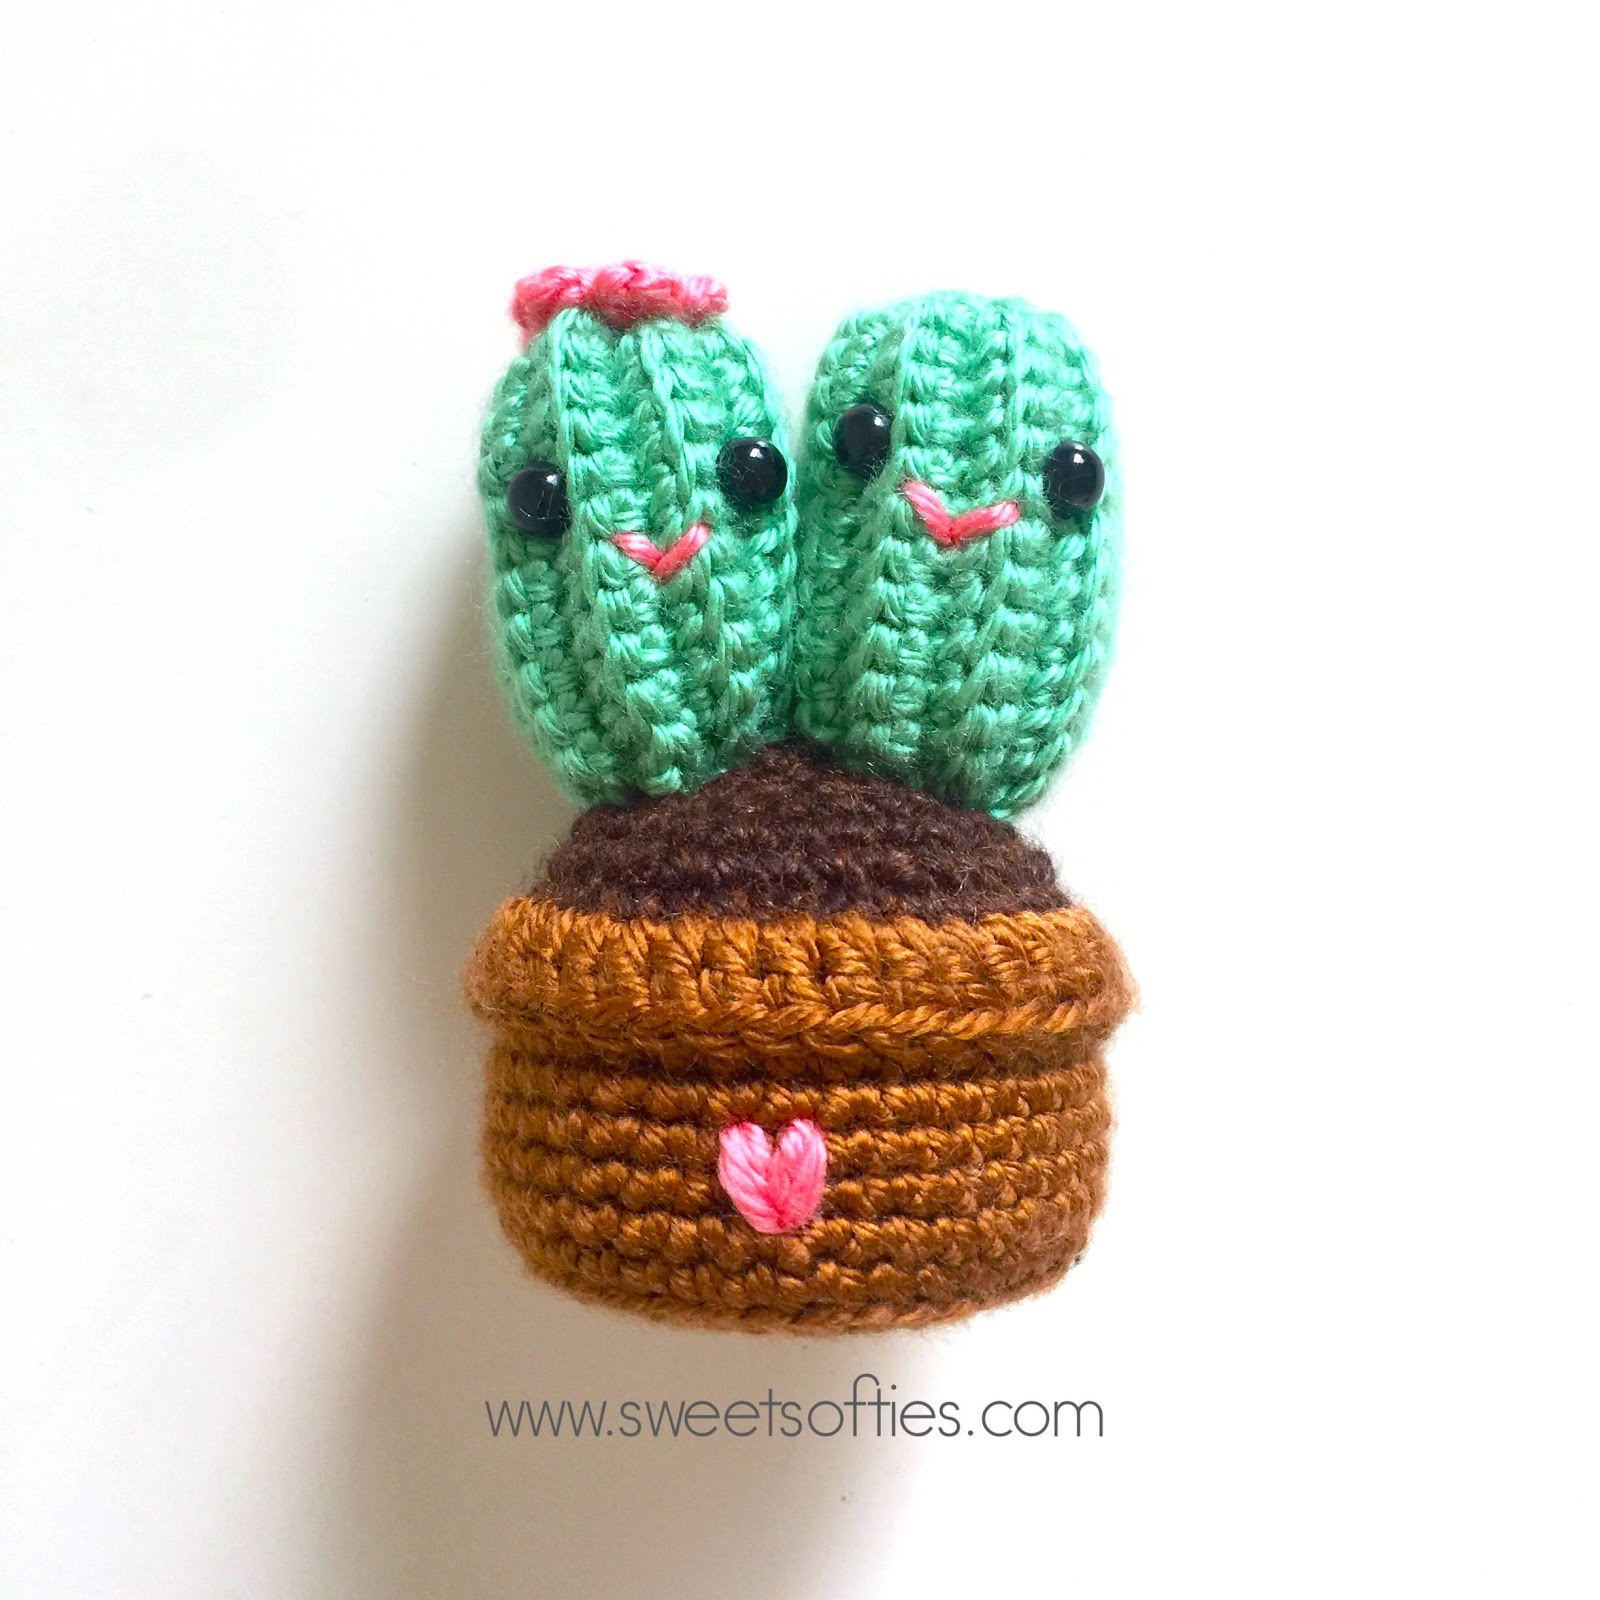 Amigurumi Happiness | Red Heart | Crochet cactus, Crochet elephant ... | 1600x1600